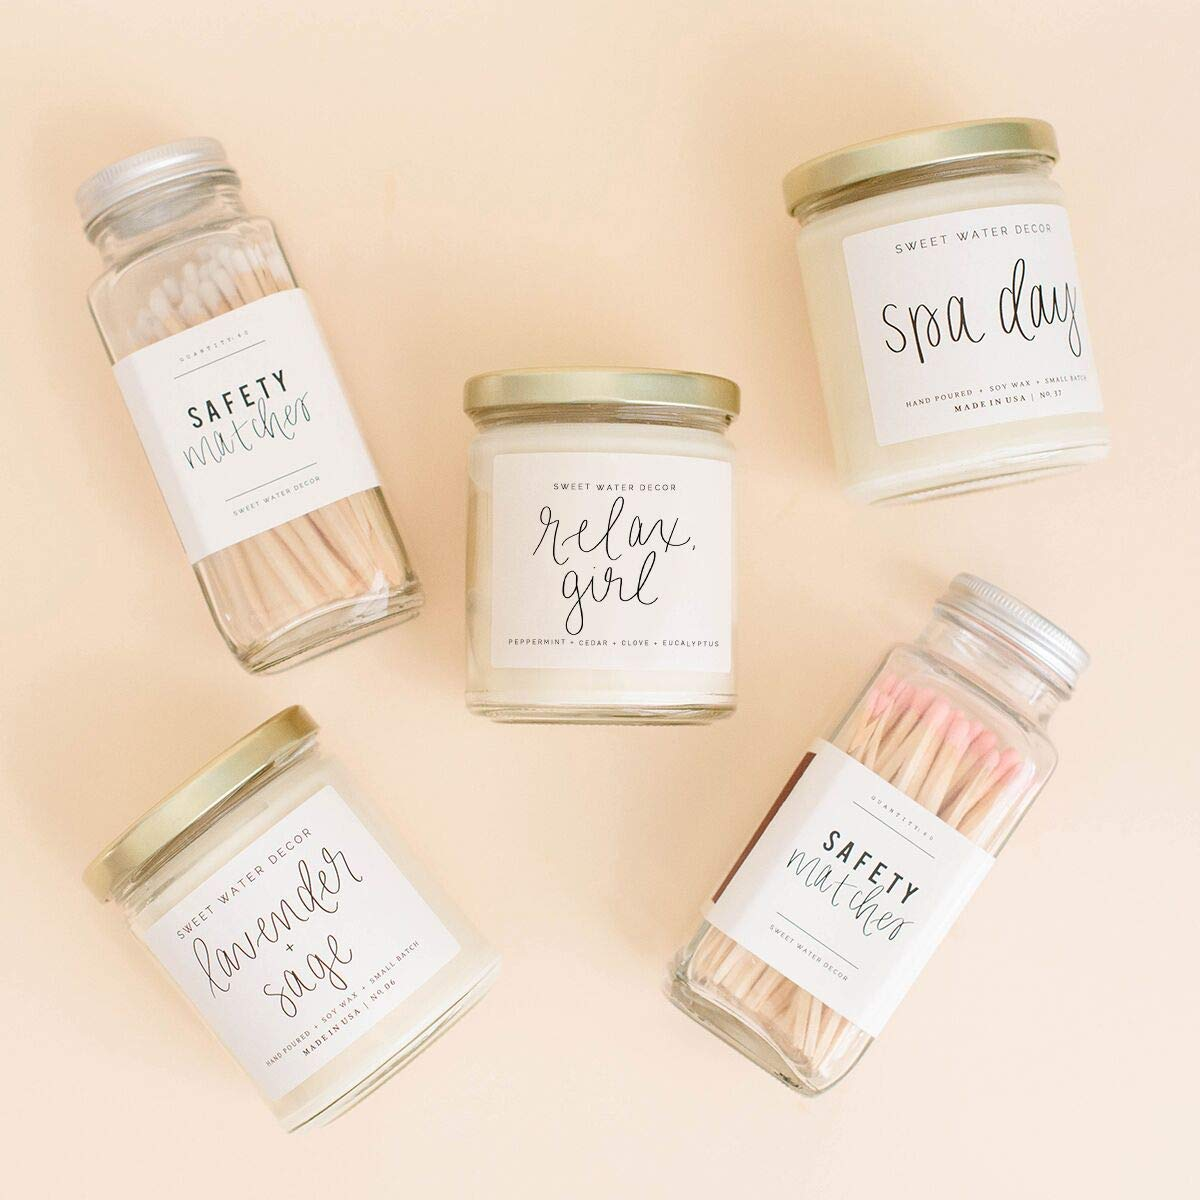 Sweet Water Decor LETS STAY HOME Soy Wax Candle Scented Candles Motivational Quote Candles Inspirational Gifts Relaxing Scent Restful Fragrance Peaceful Aromatherapy Candles Cozy Weekend Hygge Candle